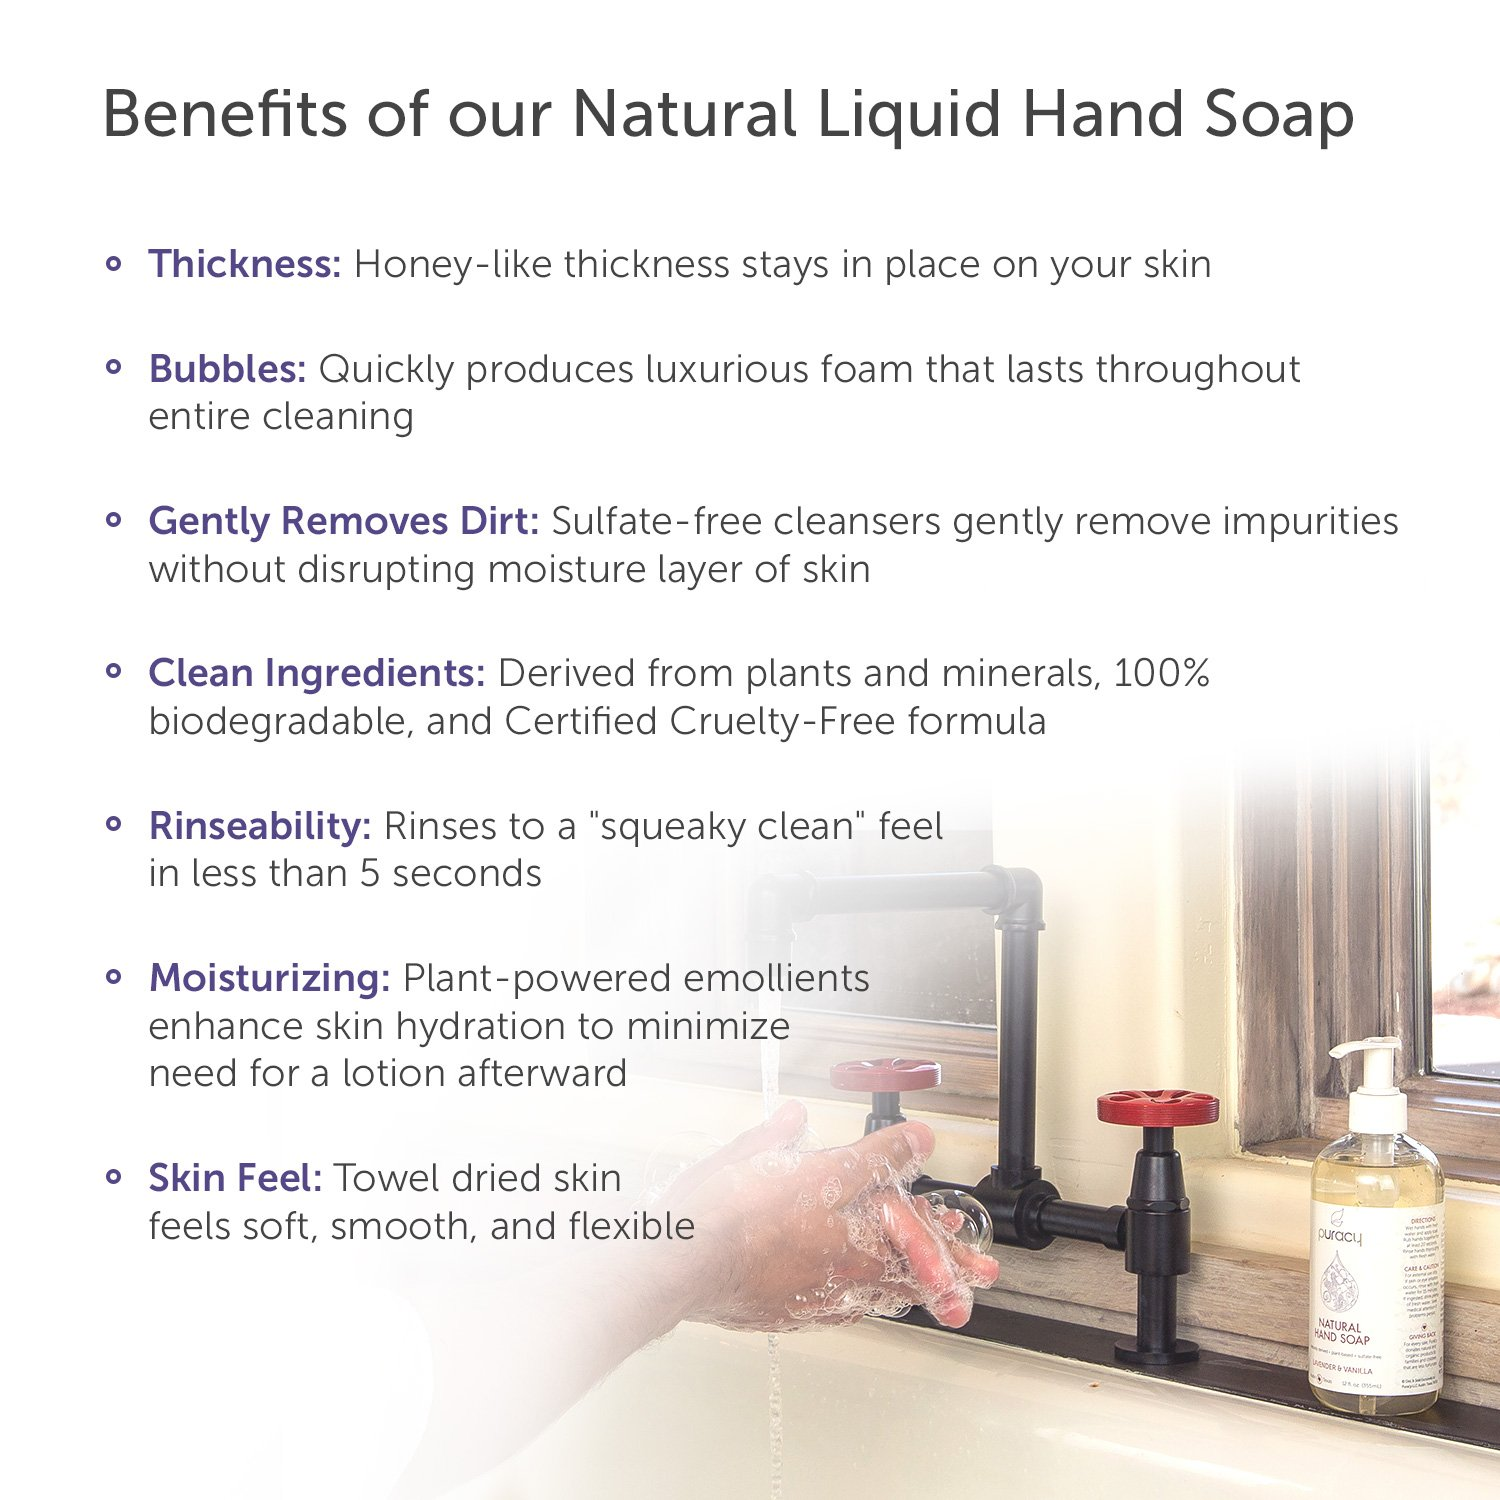 Puracy Natural Liquid Hand Soap Refill, Sulfate-Free Gel Hand Wash, Lavender & Vanilla, 64 Ounce by Puracy (Image #4)